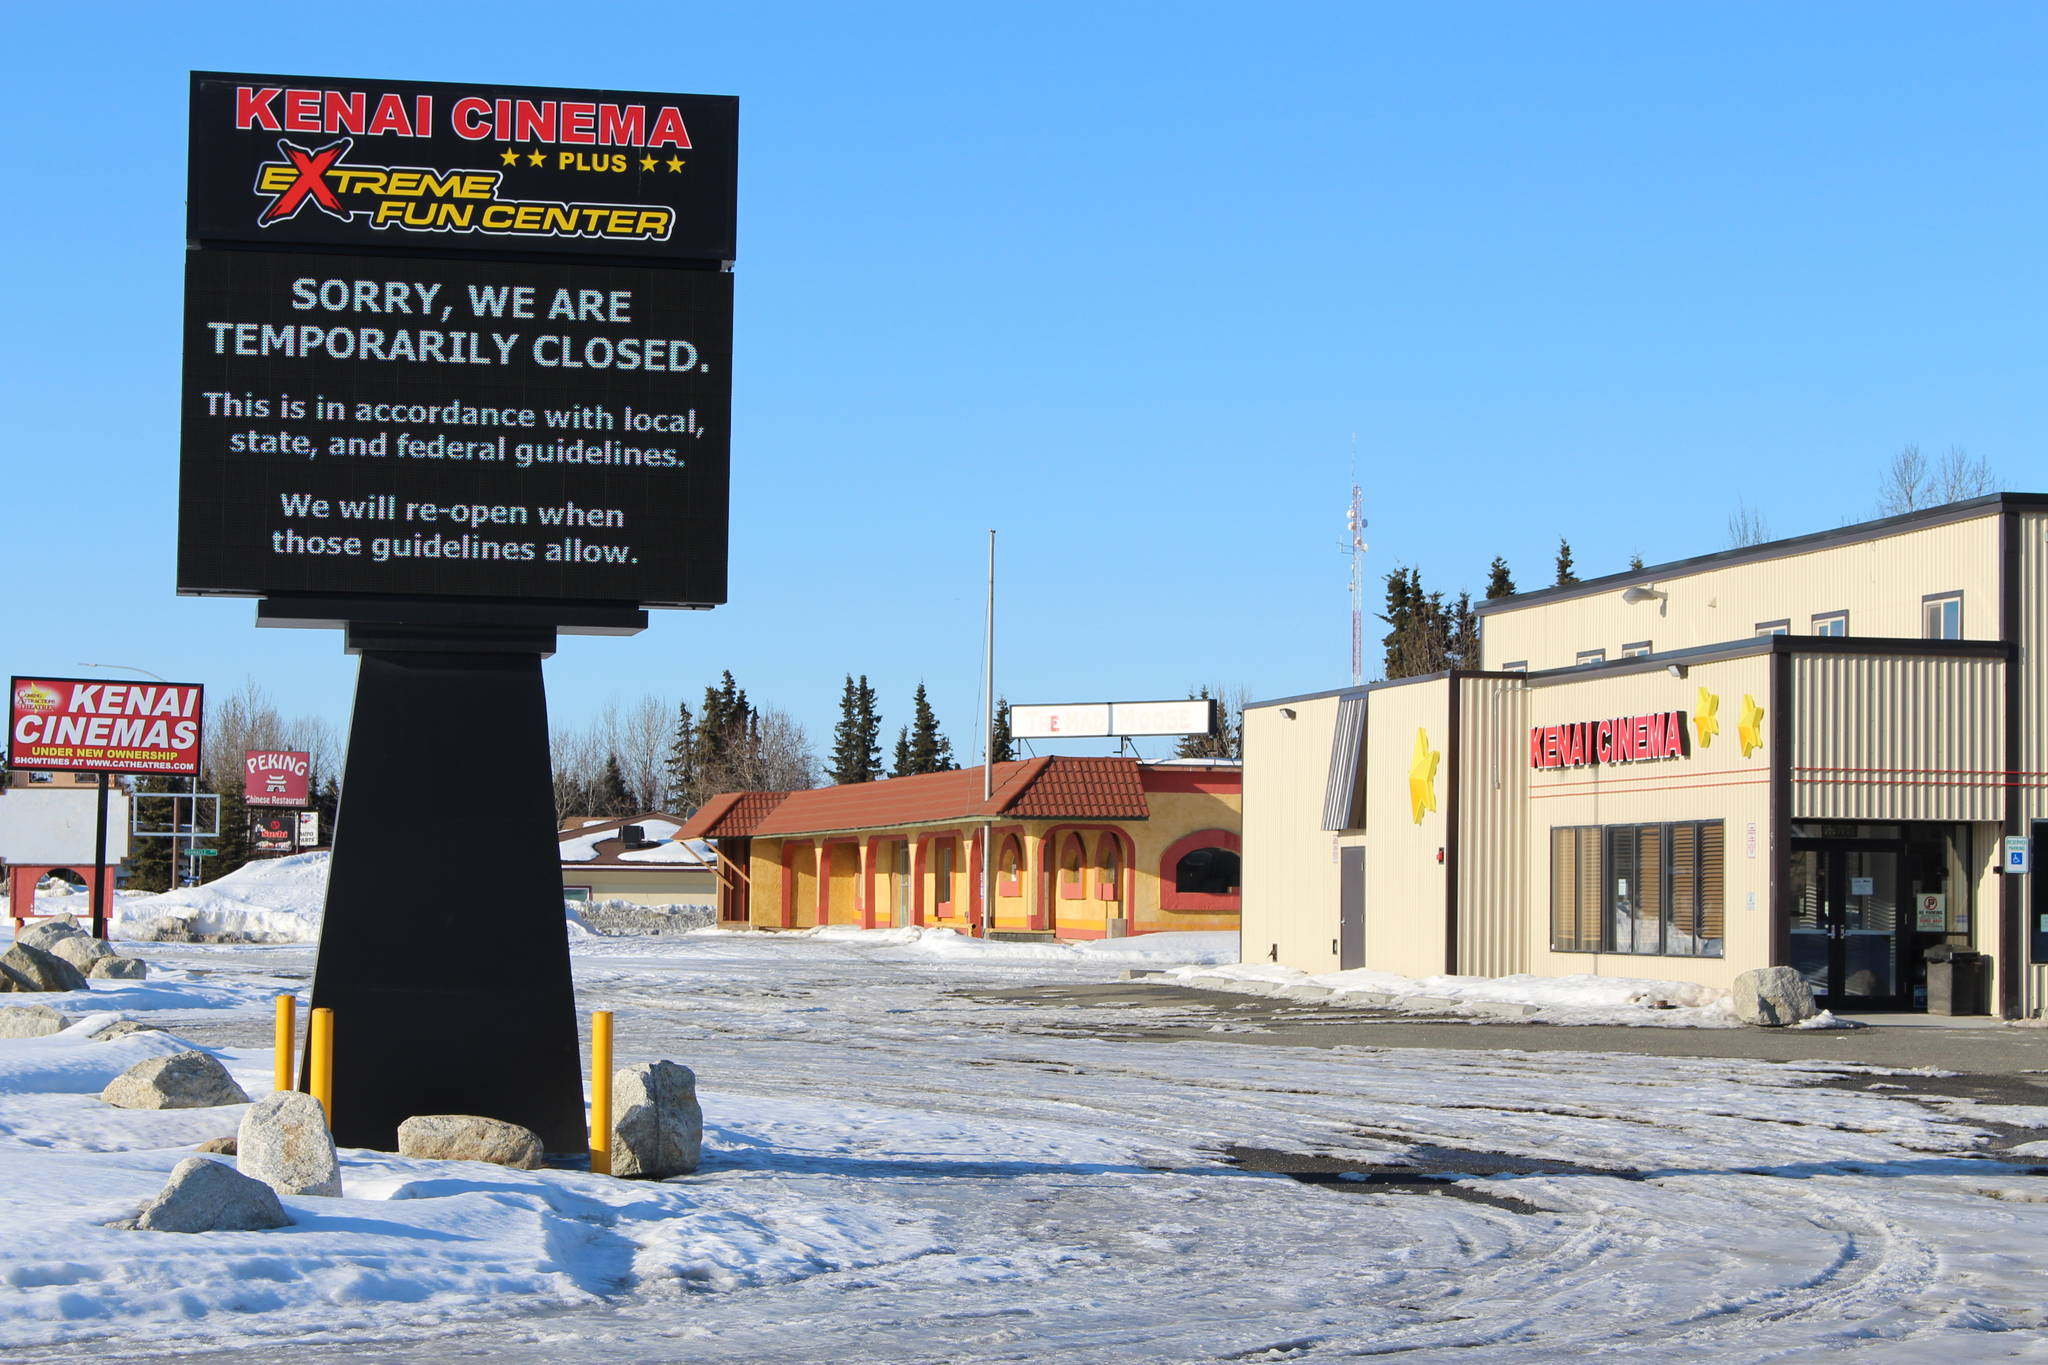 The sign outside of the Kenai Cinema and Extreme Fun Center can be seen here in Kenai, Alaska, on March 28, 2020. (Photo by Brian Mazurek/Peninsula Clarion)